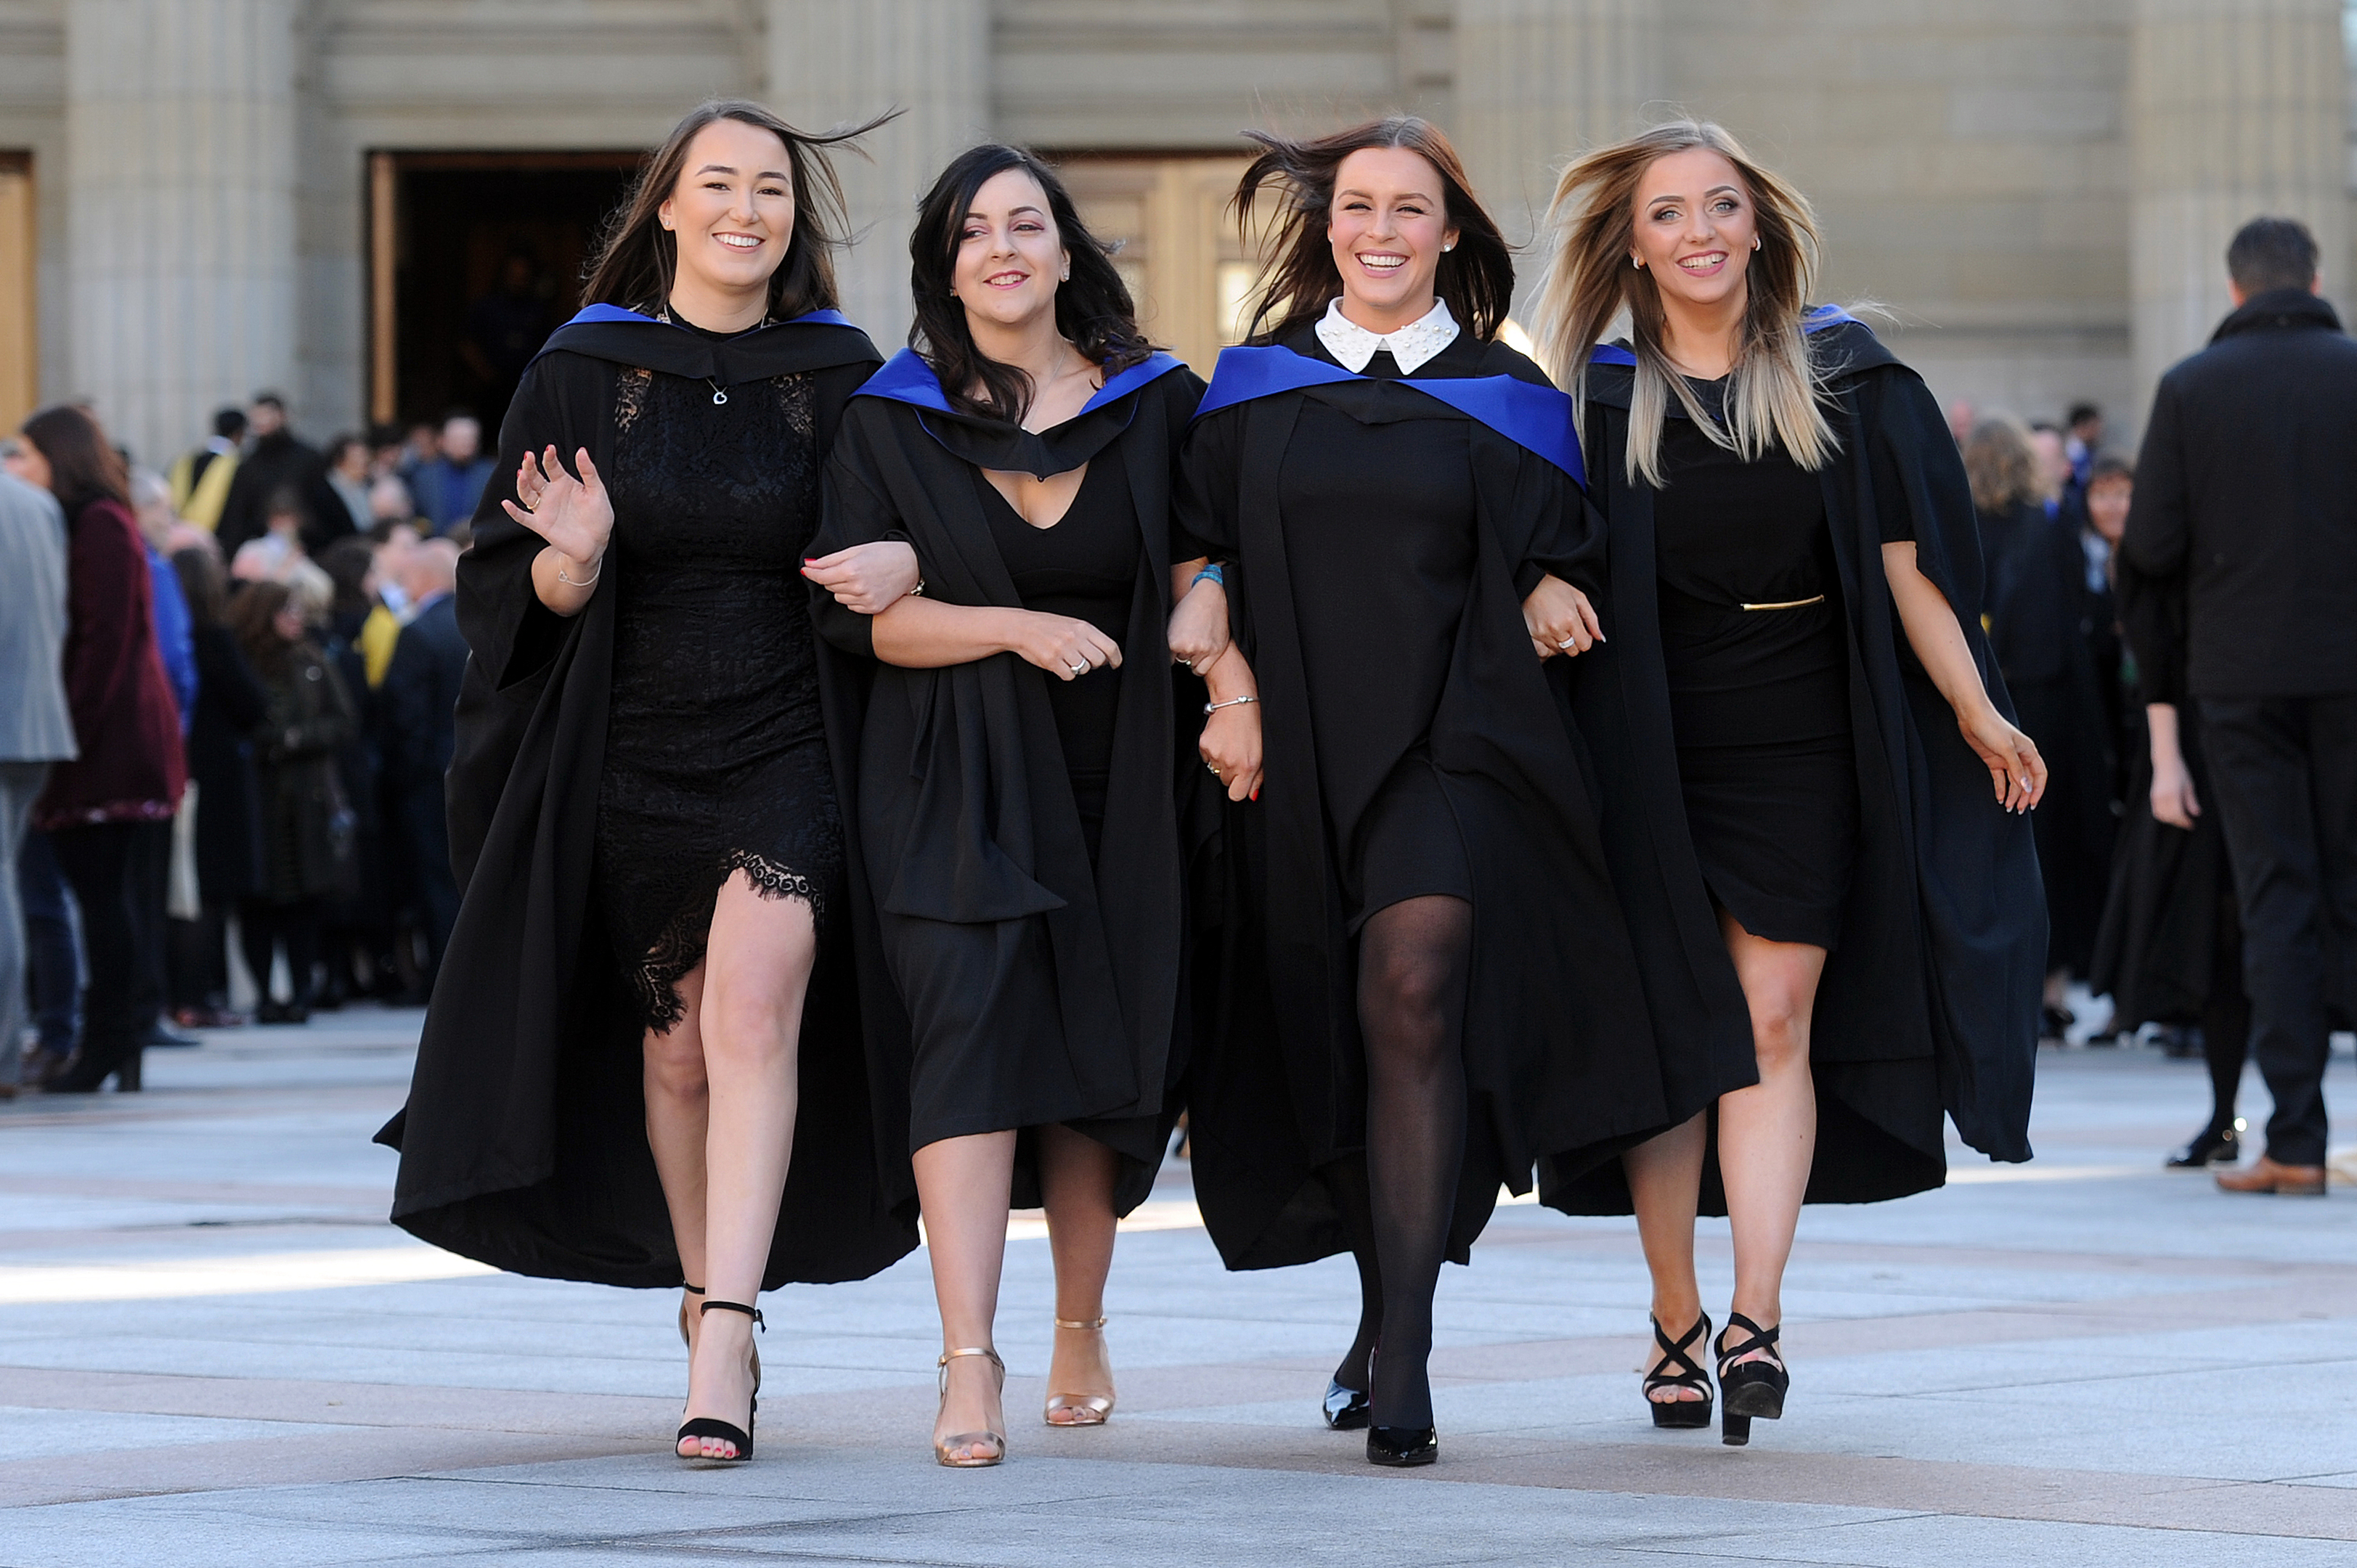 Dundee University held its Winter Graduation ceremony in the Caird Hall. Pictured are (L-R) Megan Brewer, Kathleen Duffy, Jenna Davidson and Caroline MacLean